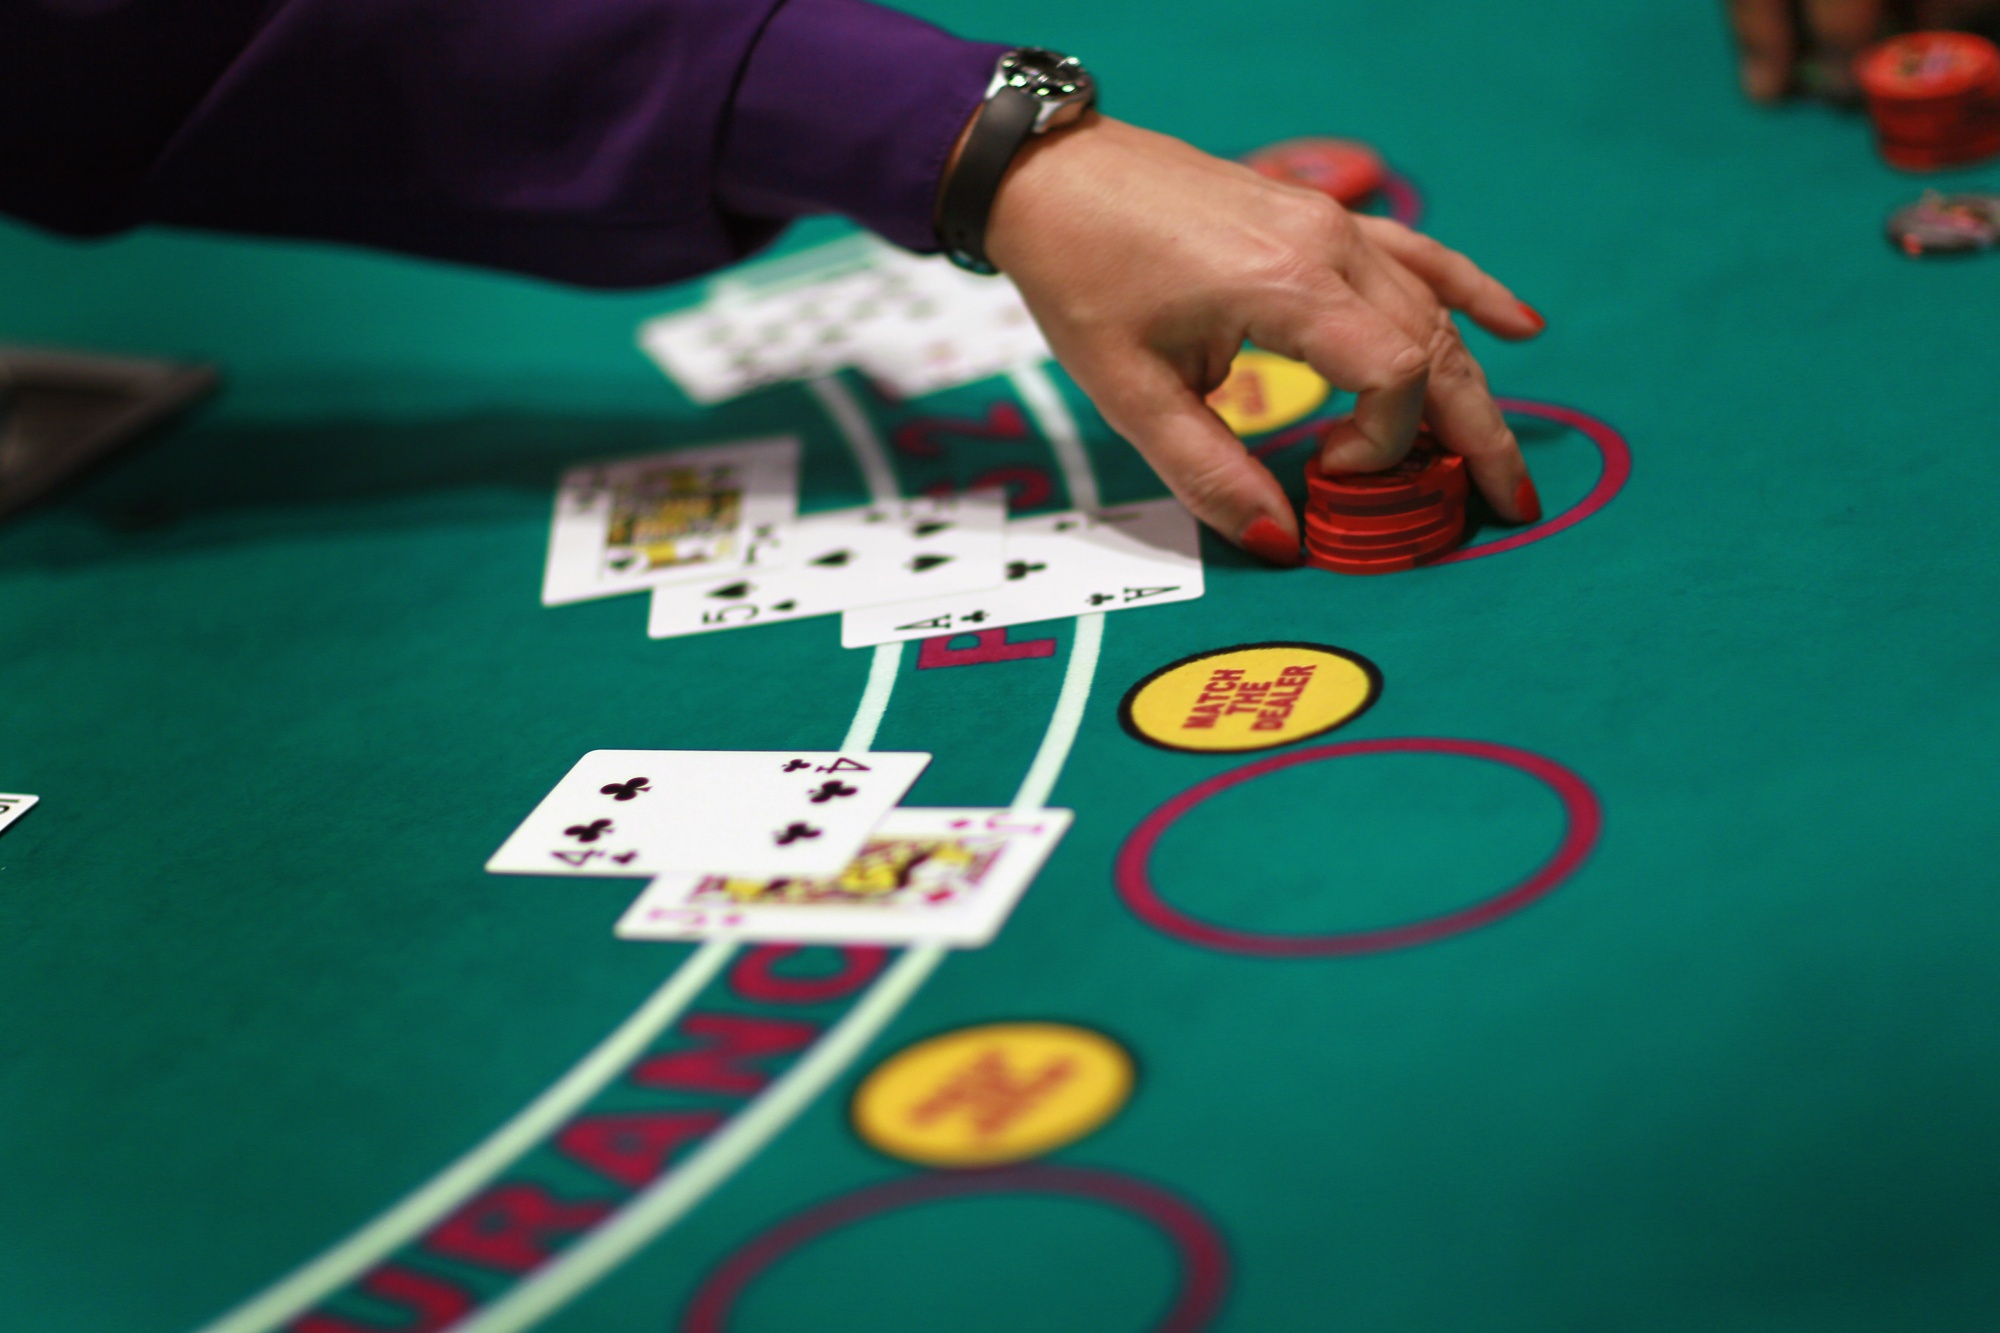 As Covid Shutters Casinos, Indian Country Reels - Bloomberg